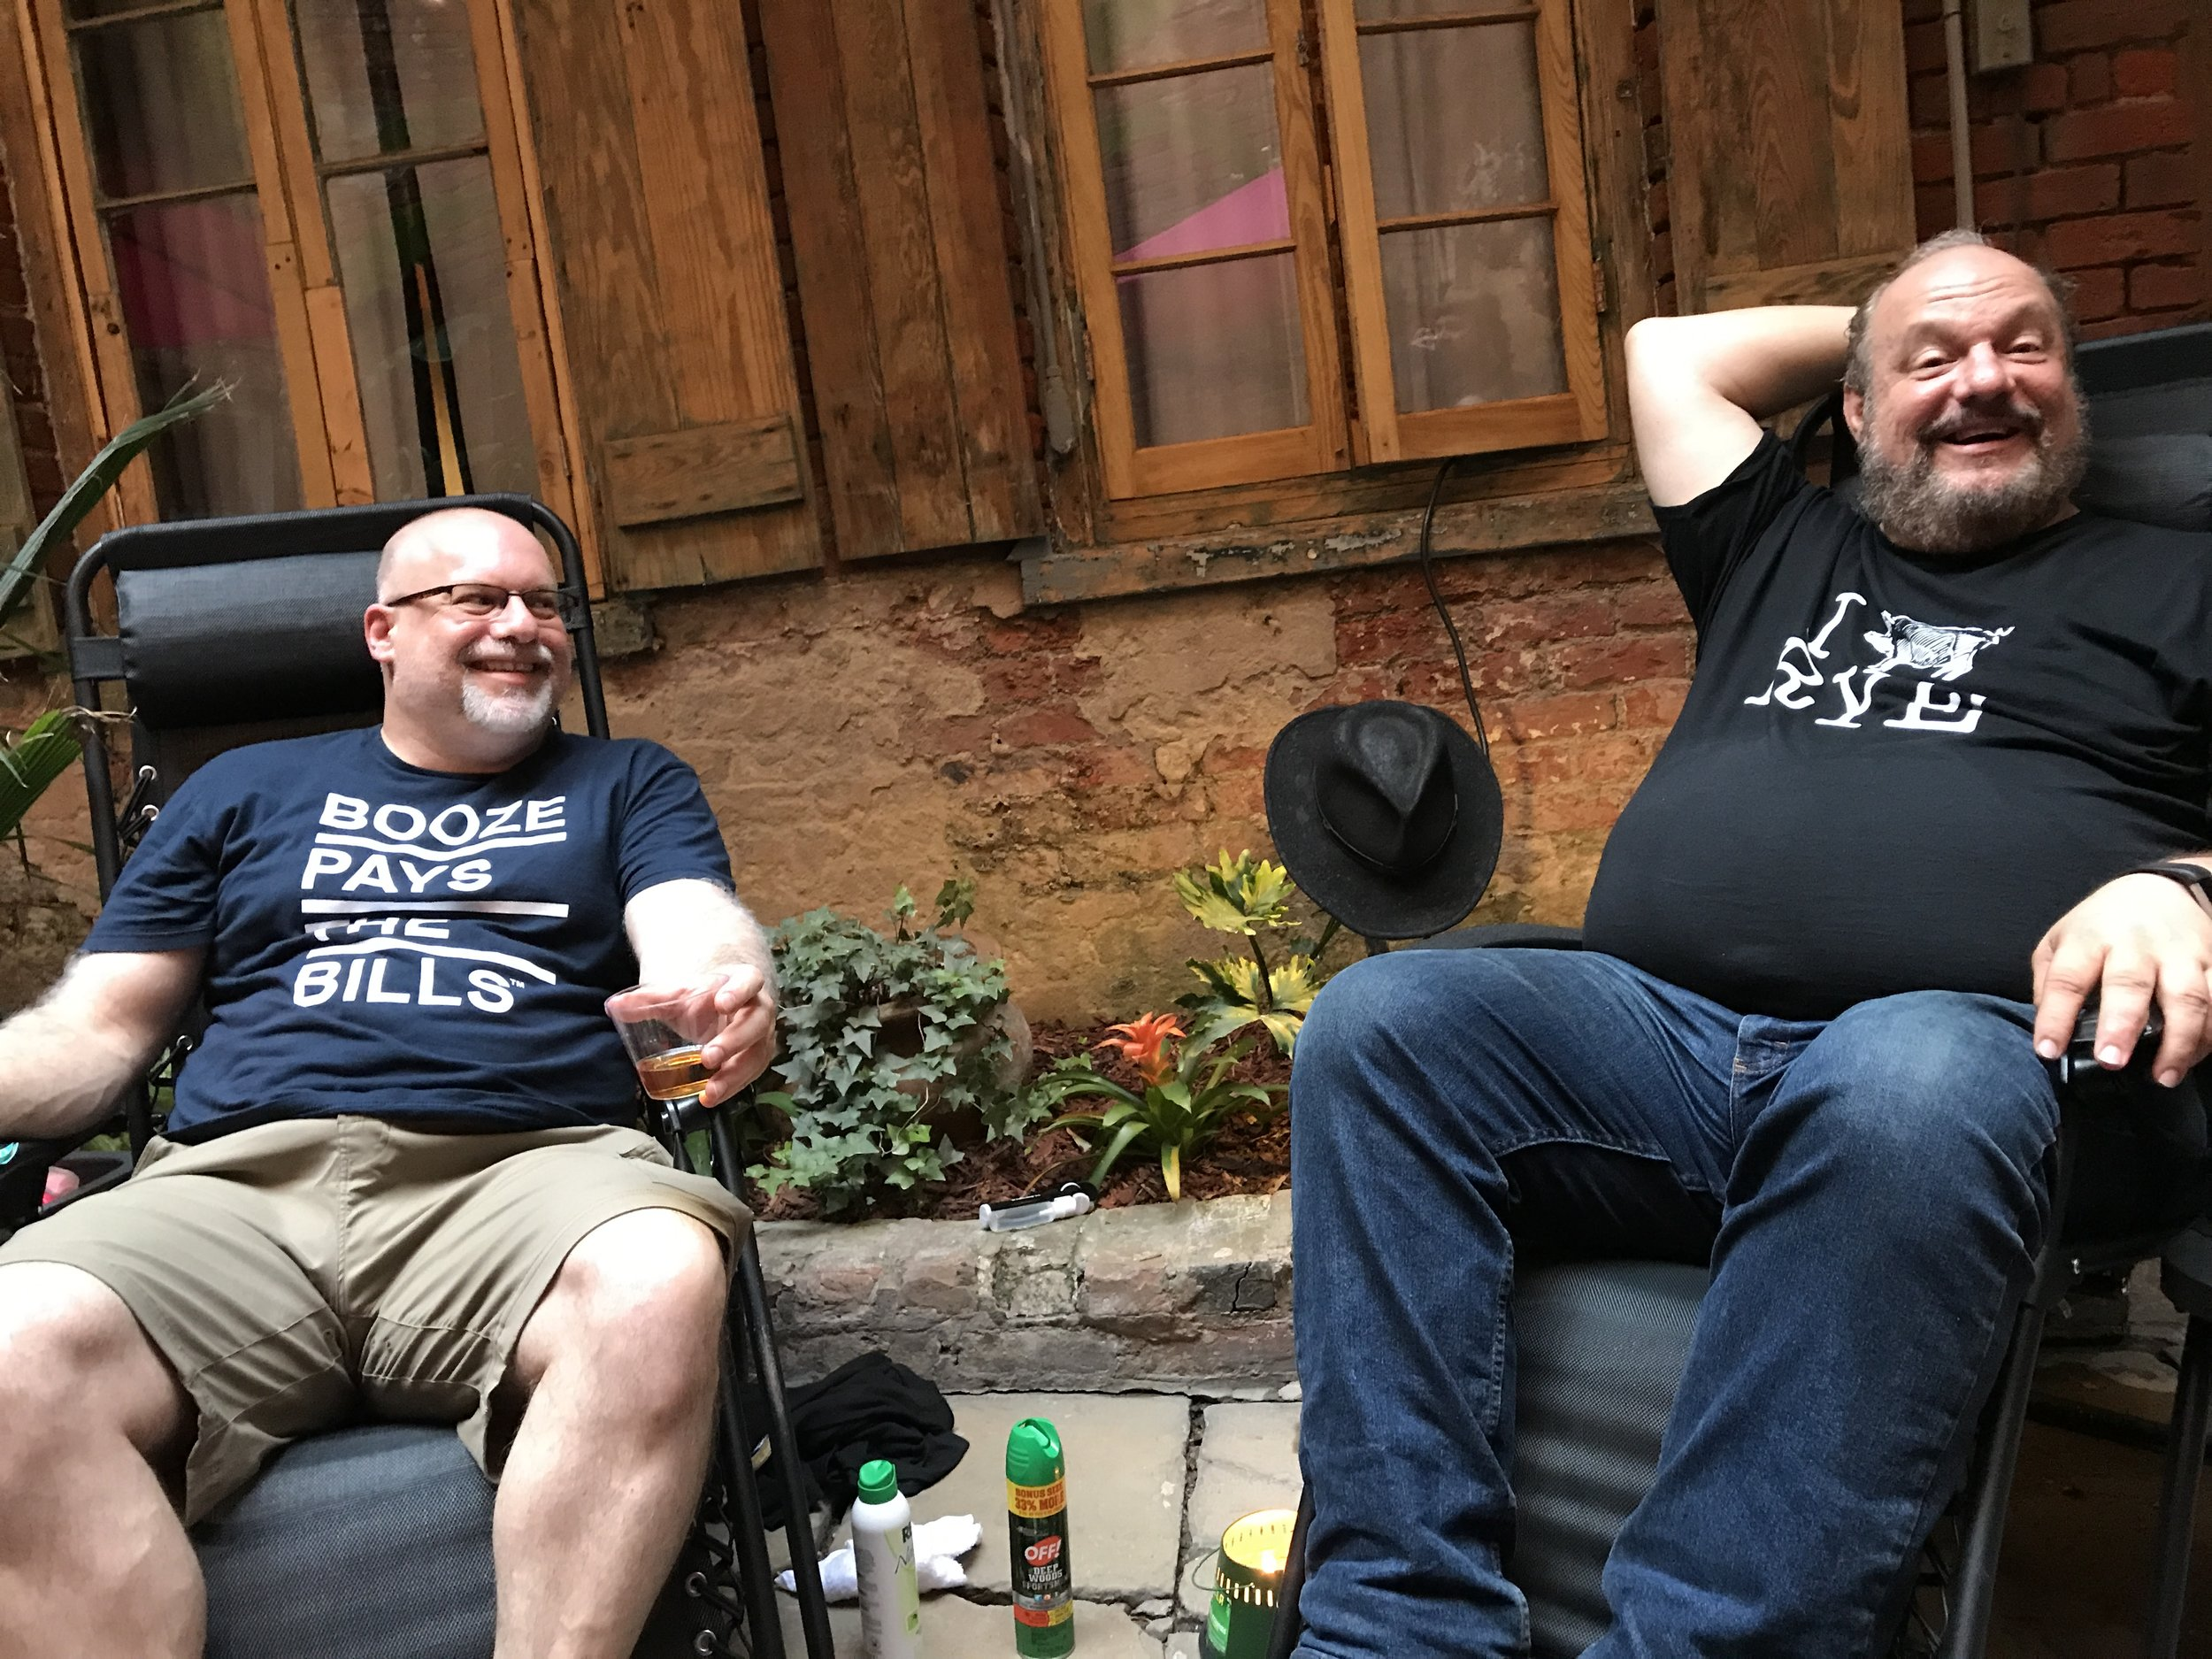 Adam Levy (L) kicks back with Master Distiller Dave Pickerell at Tales of the Cocktail in 2018. Pickerell sadly passed in November, and cherished moments like these will be greatly missed.